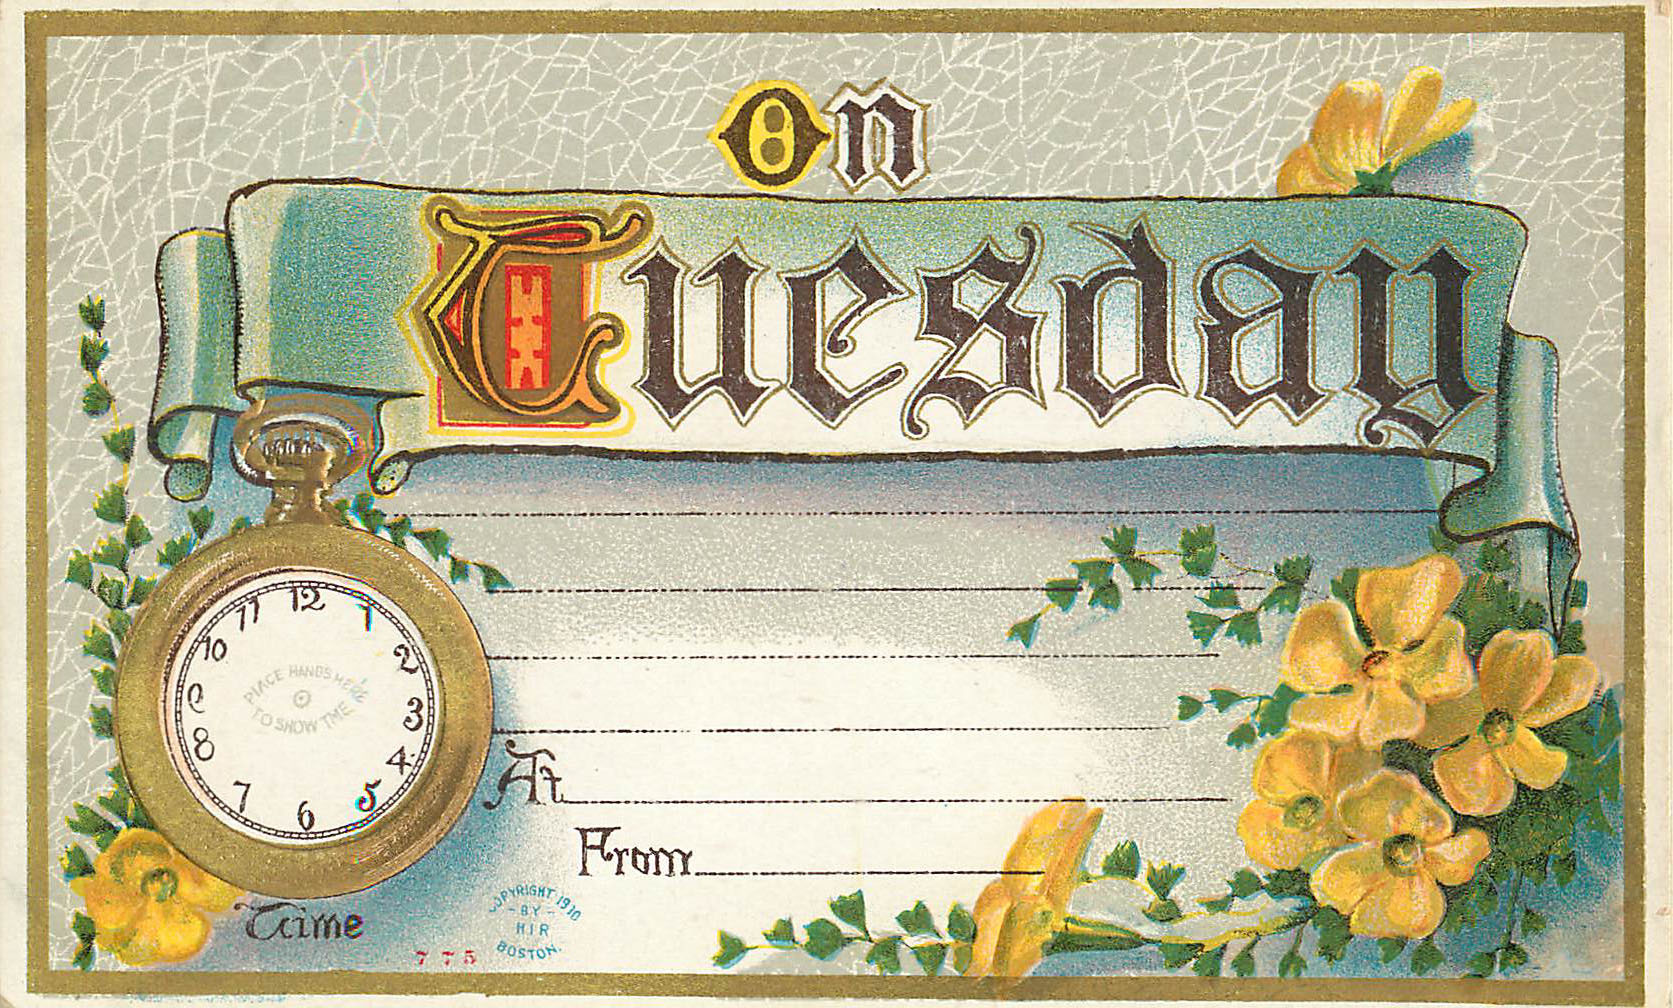 On Tuesday - Appointment Card